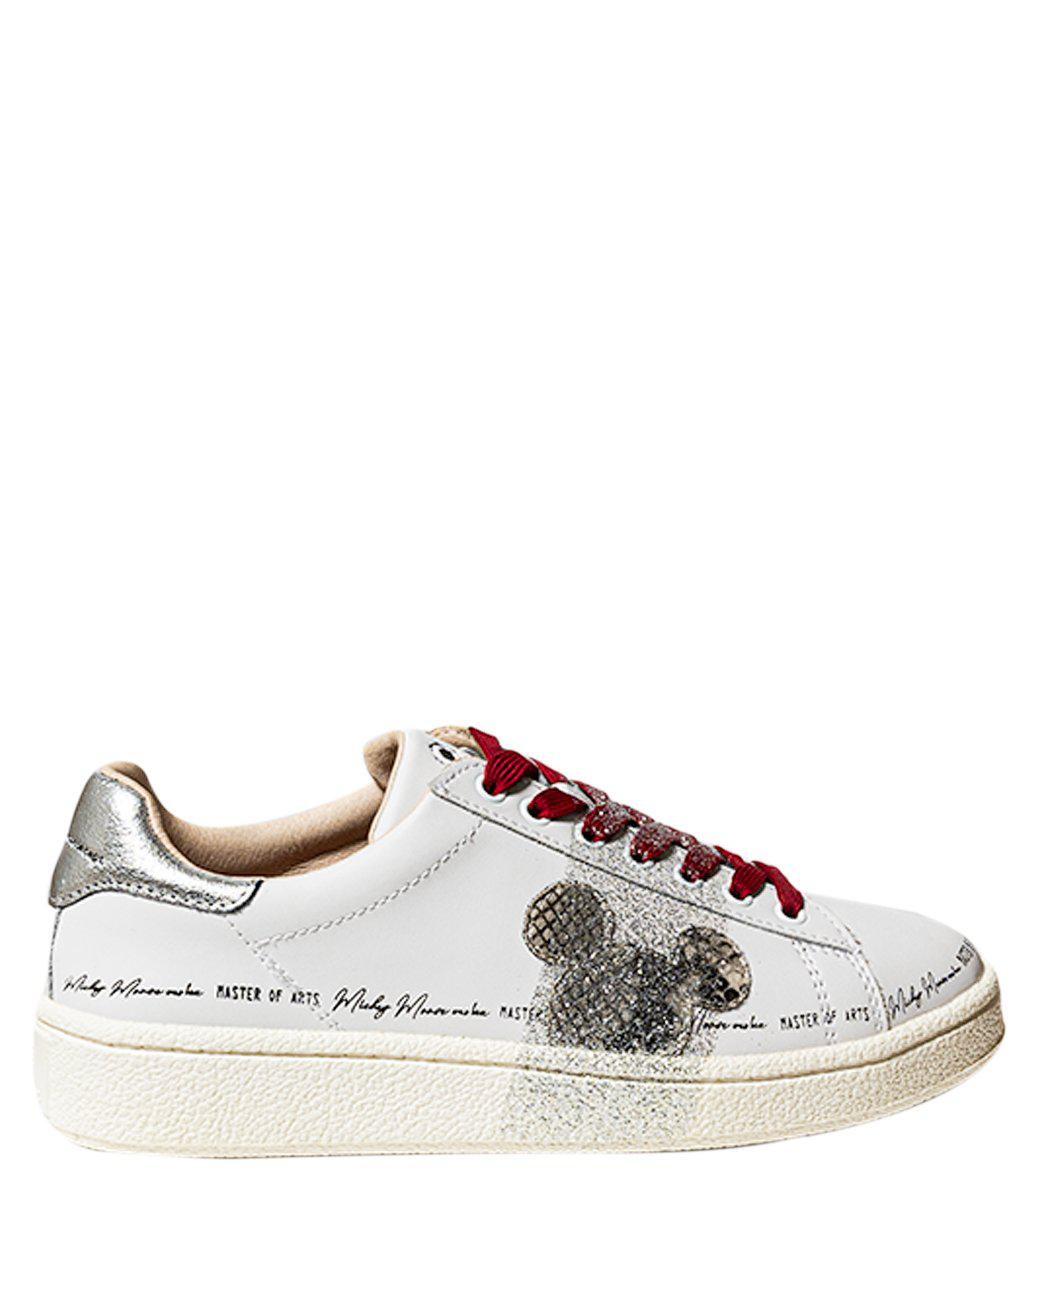 Moa Master Of Arts Sports MICKEY MOUSE LEATHER SNEAKERS